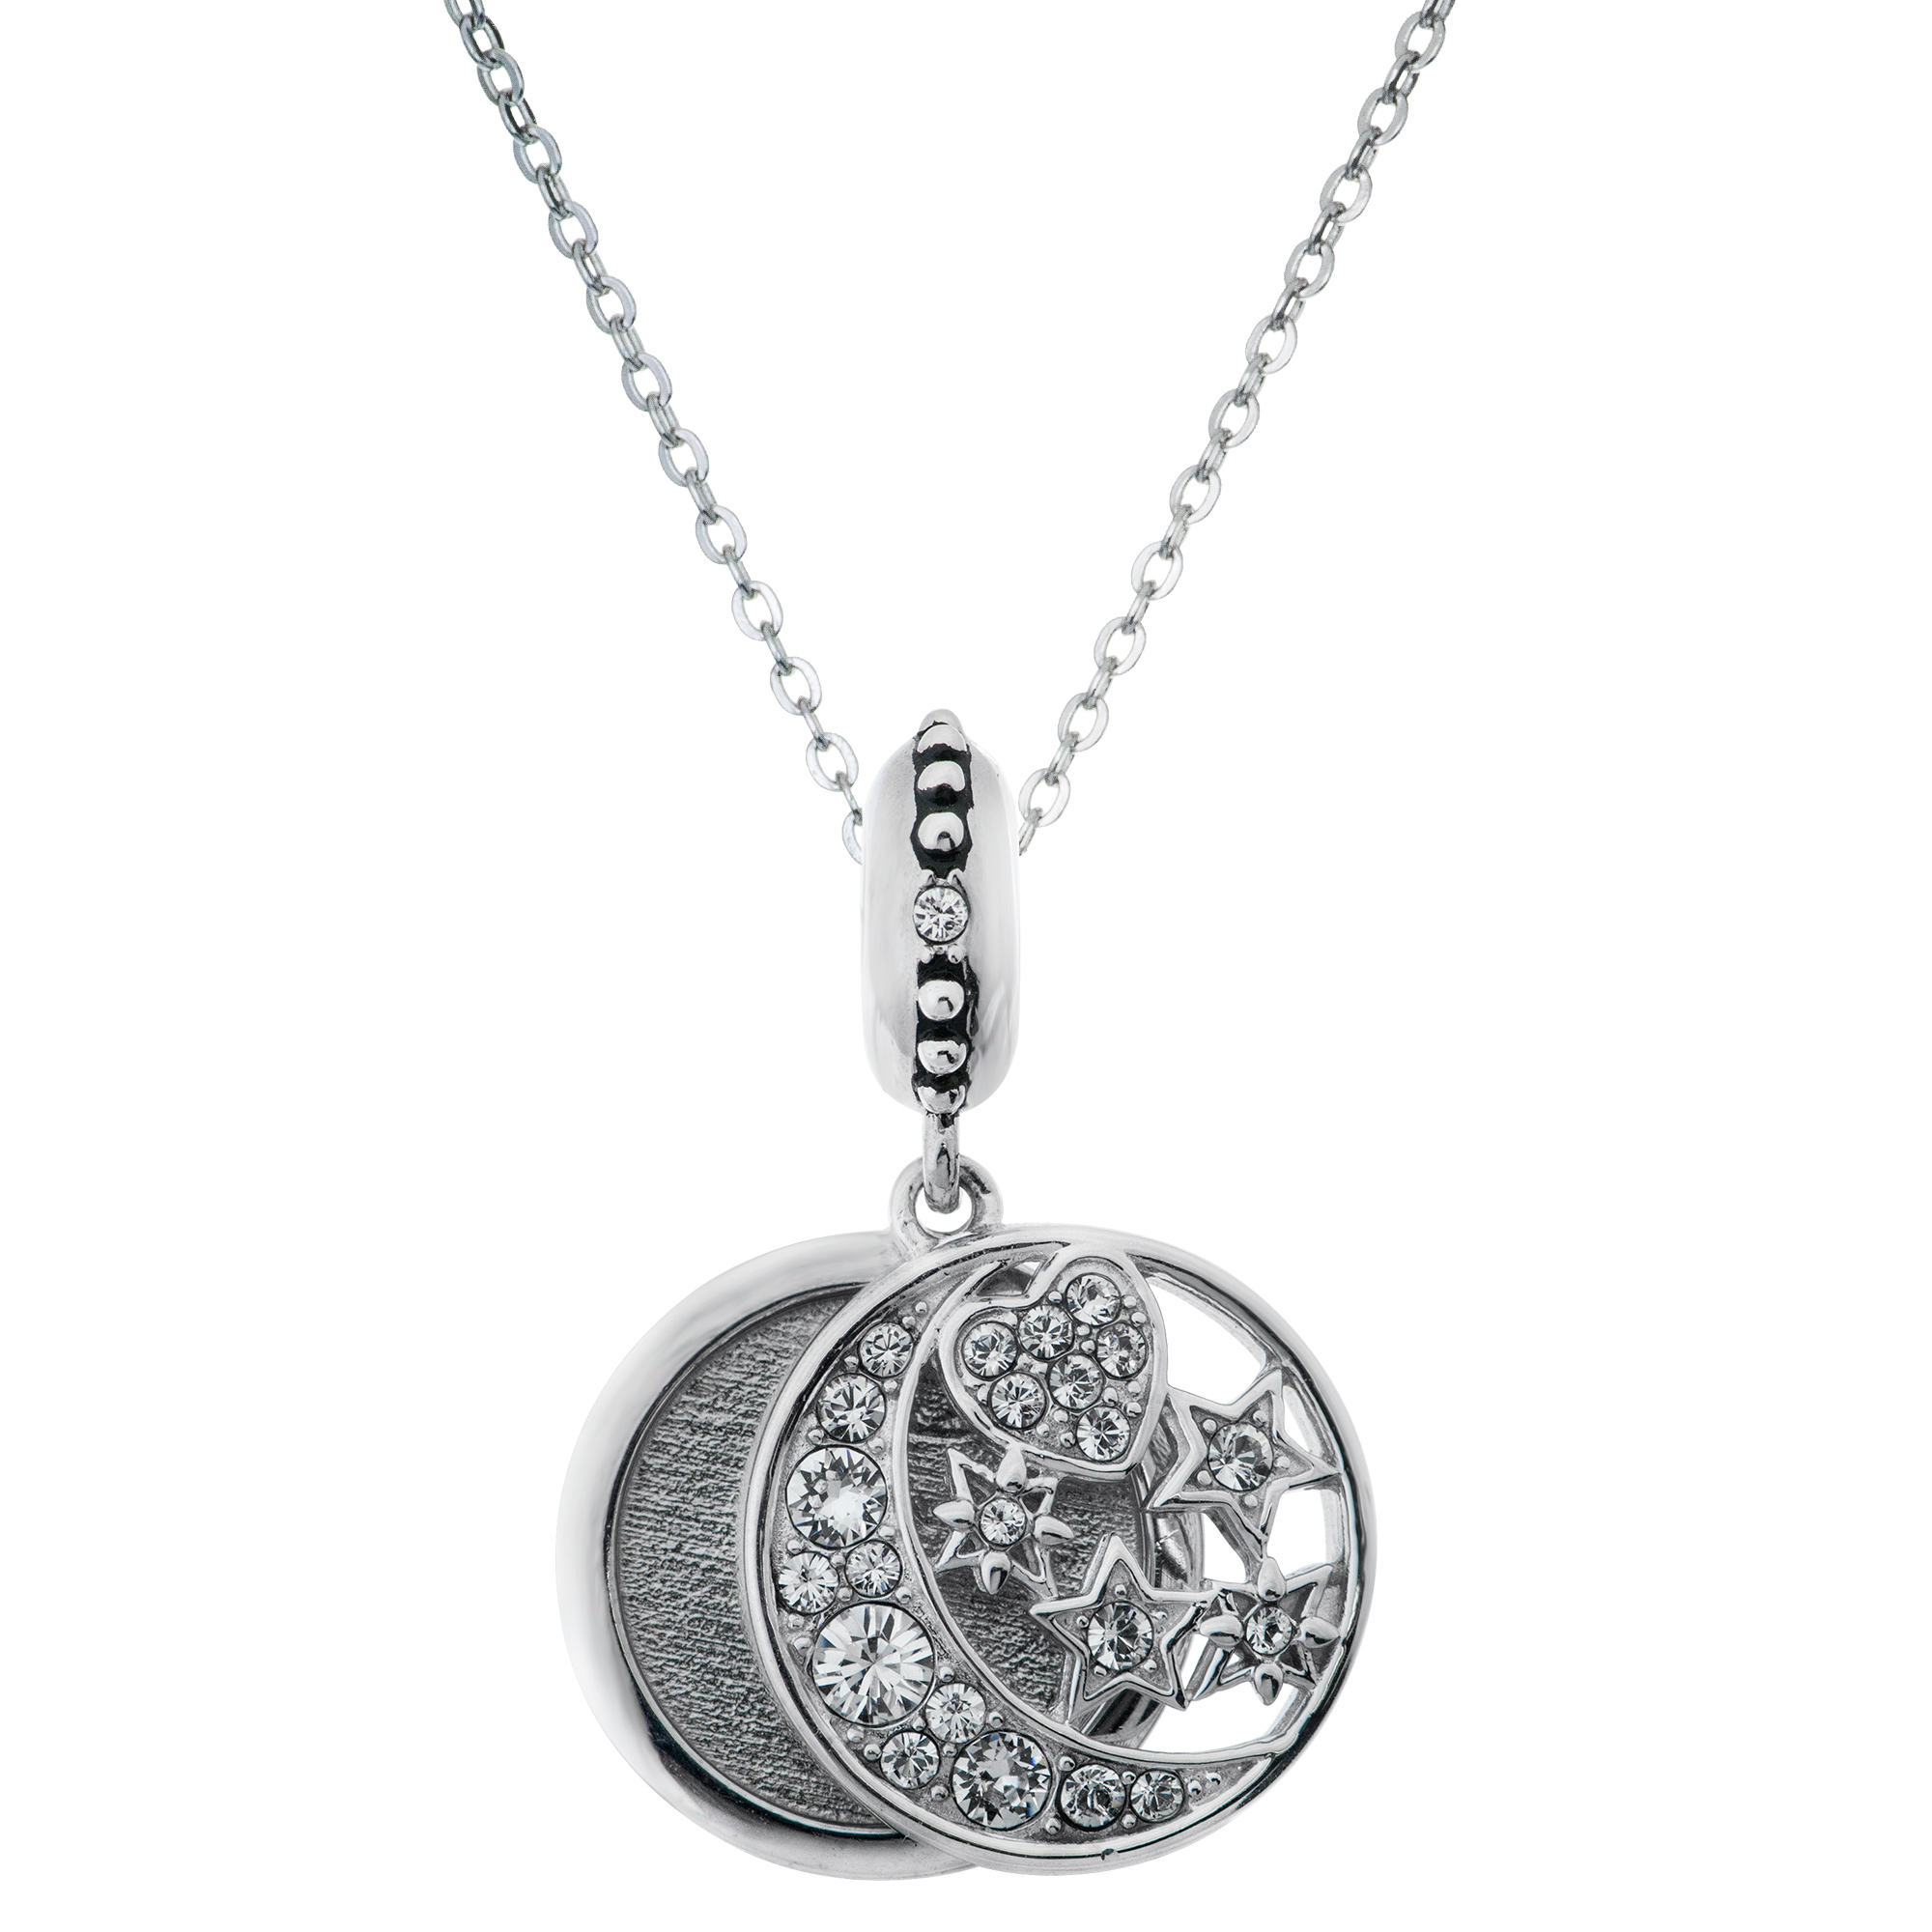 "925 Sterling Silver Personalized Photo Moon Star European Charm Pendant Chain Necklace 18"" Made of Swarovski Elements Crystal"